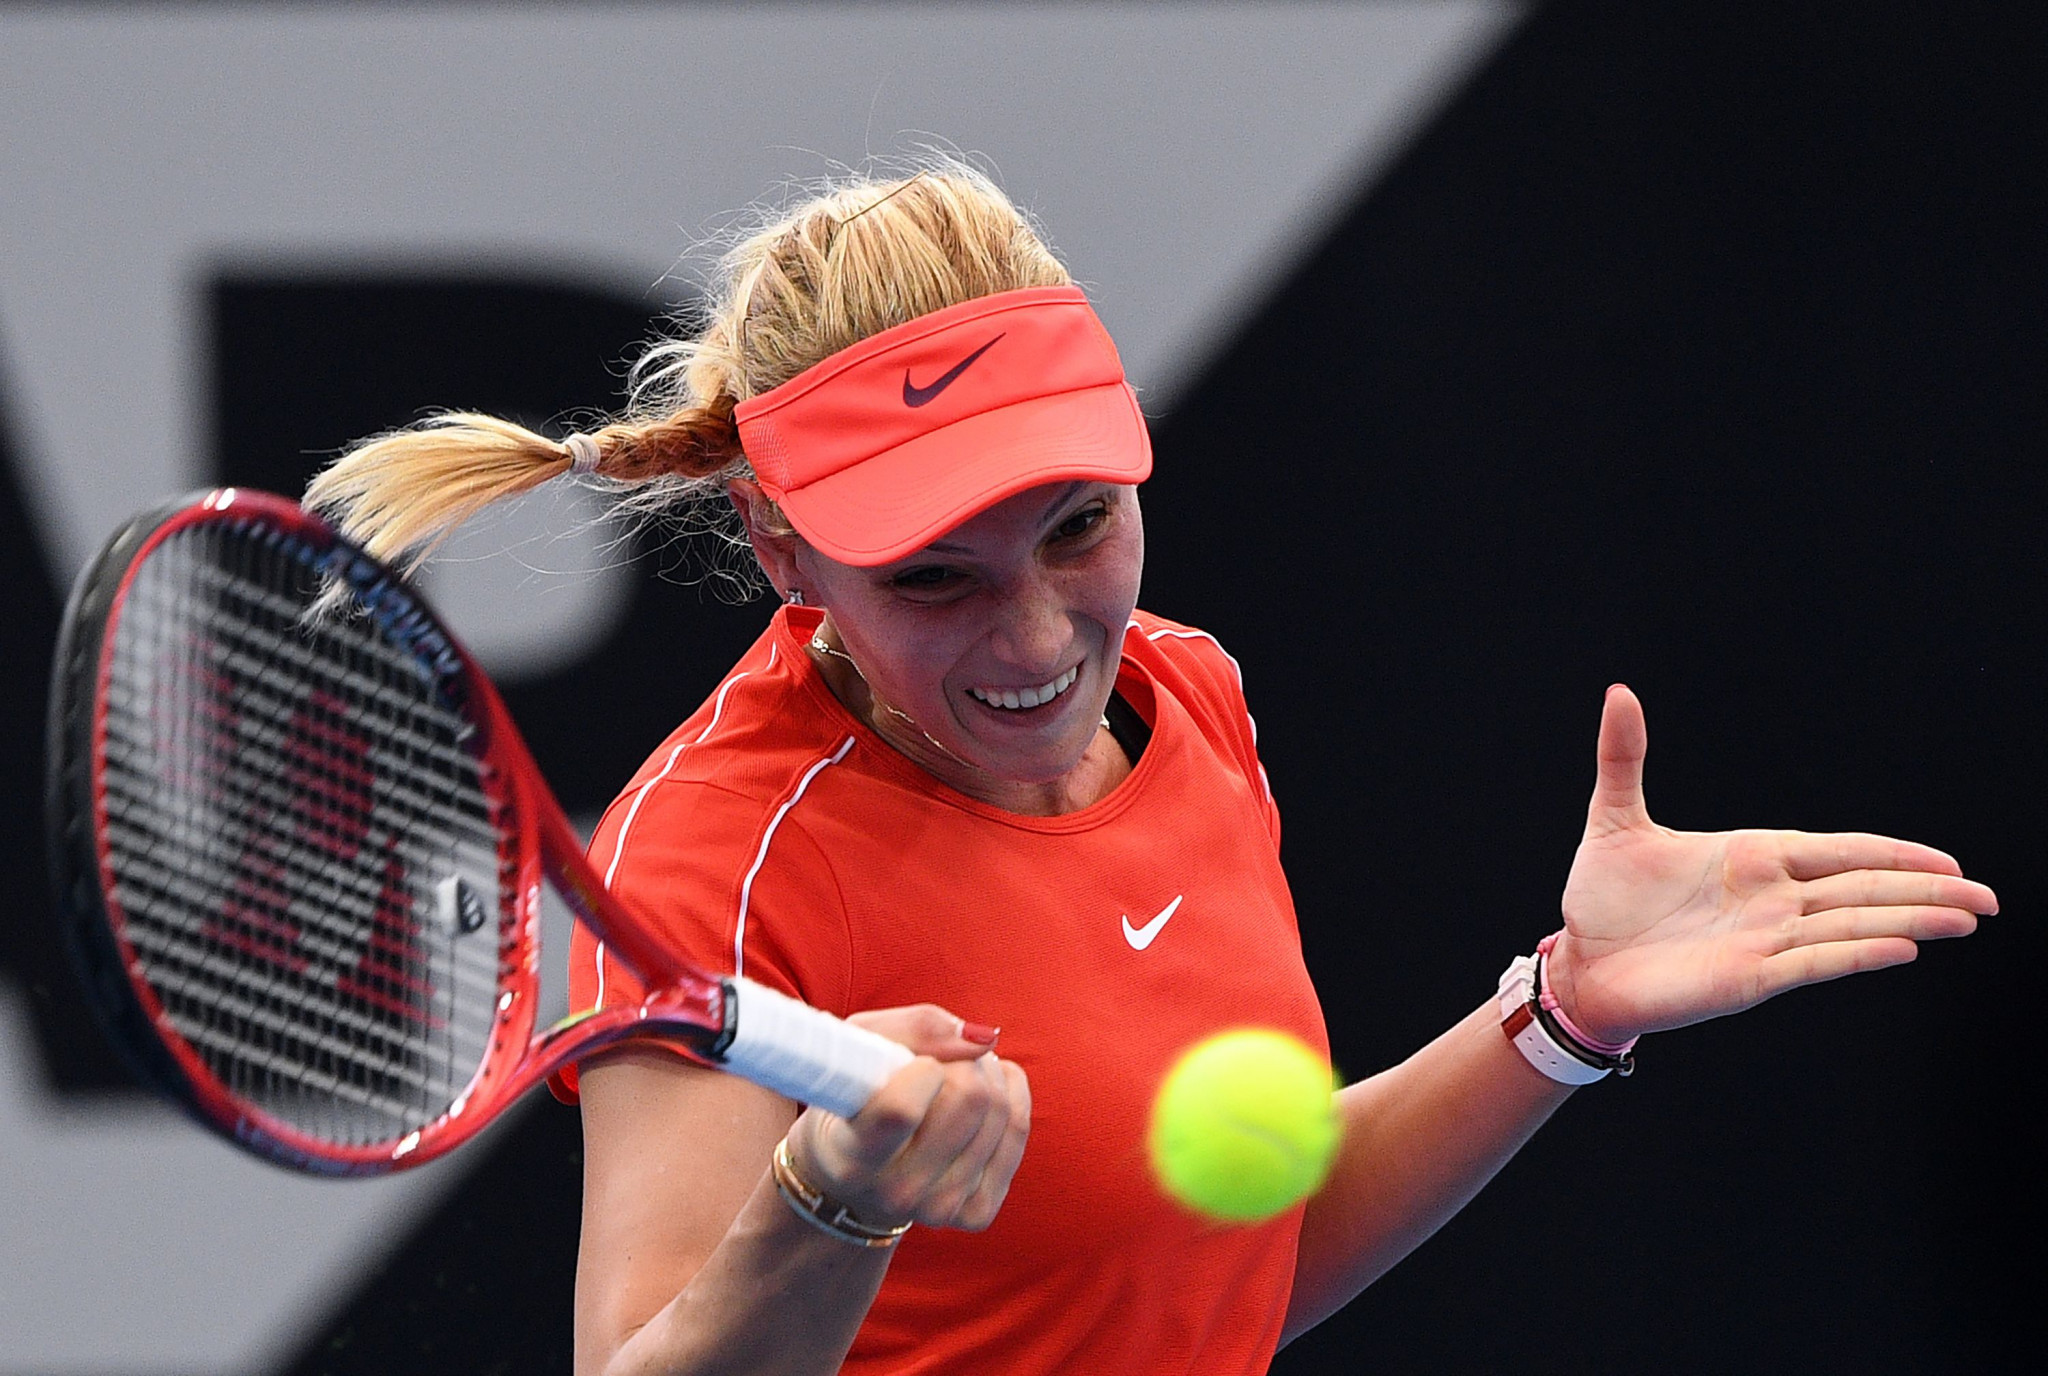 Croatia's Donna Vekic beat Belarus' Aliaksandra Sasnovich in the quarter-finals of the Brisbane International to progress to the semis ©Getty Images